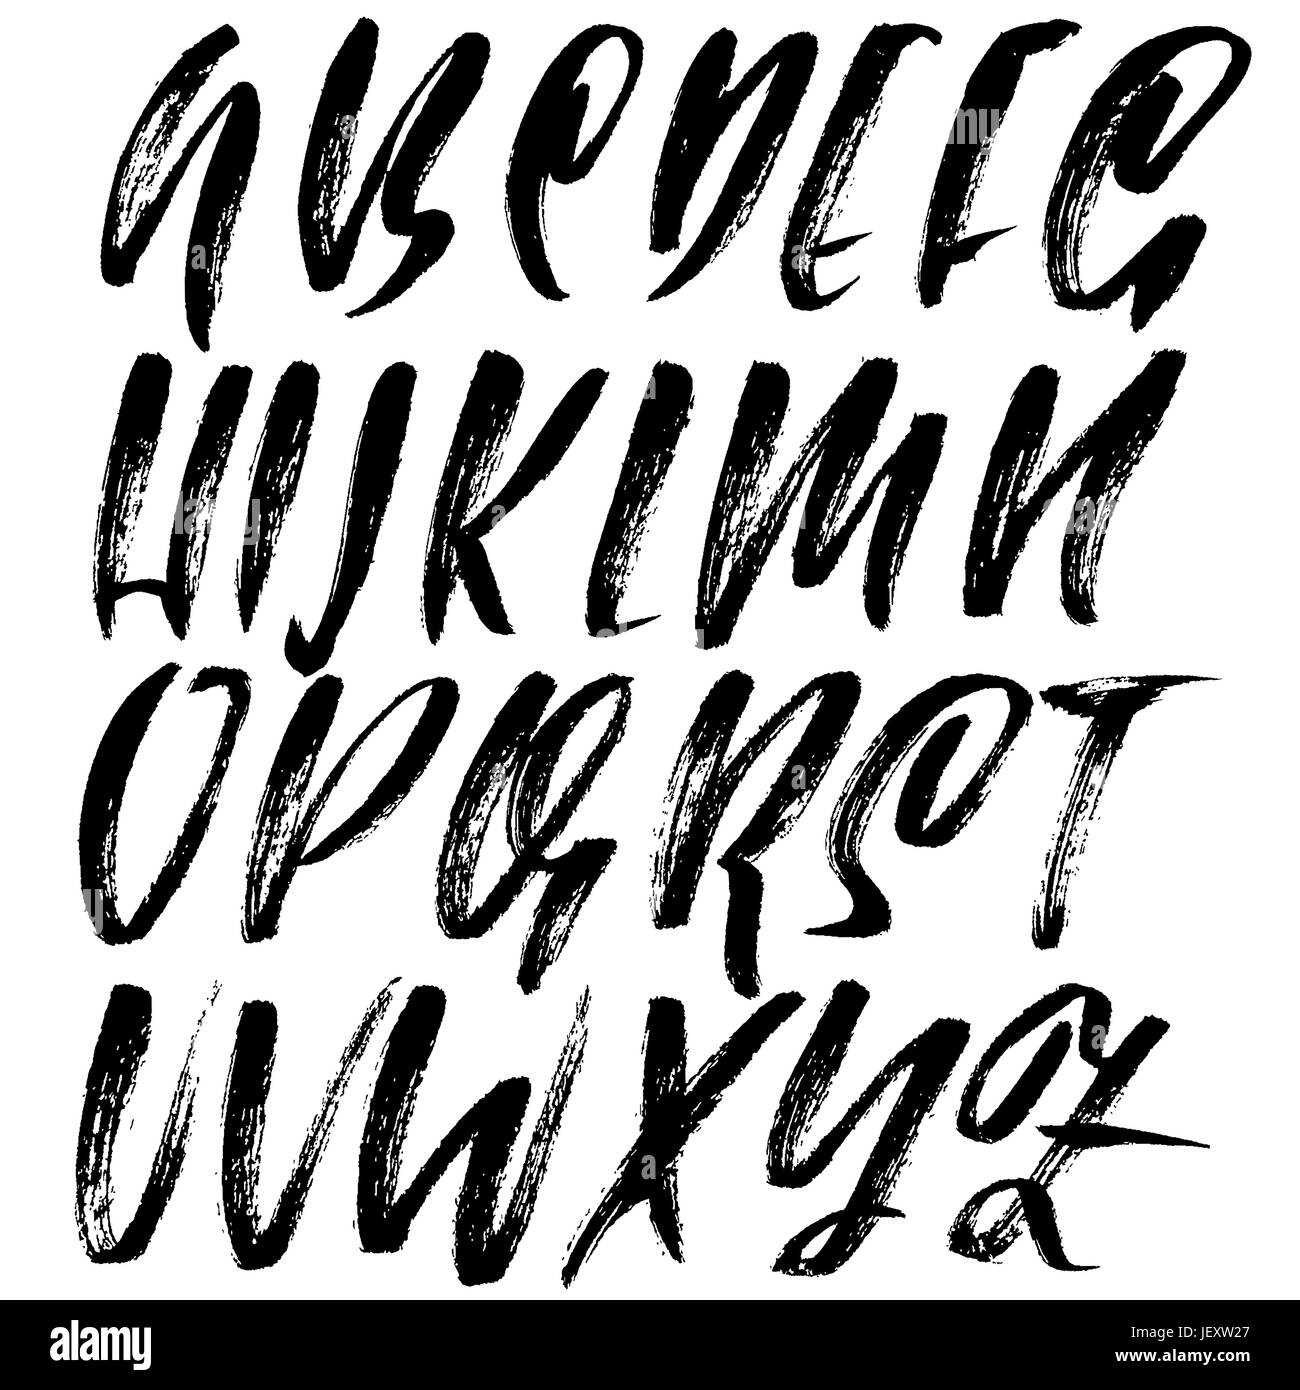 Hand drawn dry brush font modern brush lettering grunge style alphabet vector illustration